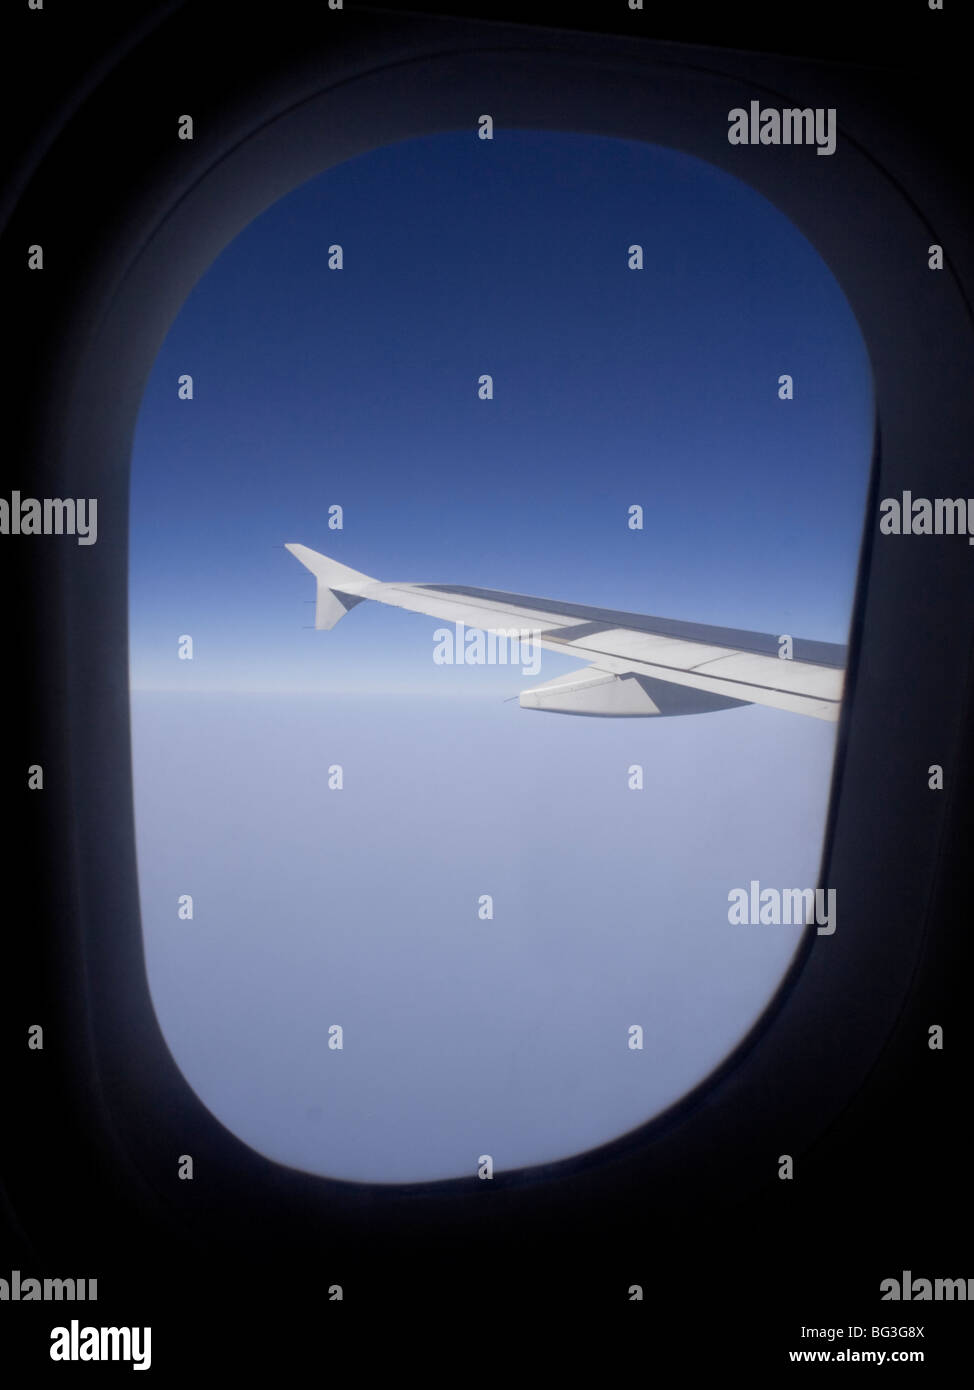 Air travel. View from the cabin window of an Airbus A319 passenger jet in flight, showing the aircraft's wing - Stock Image